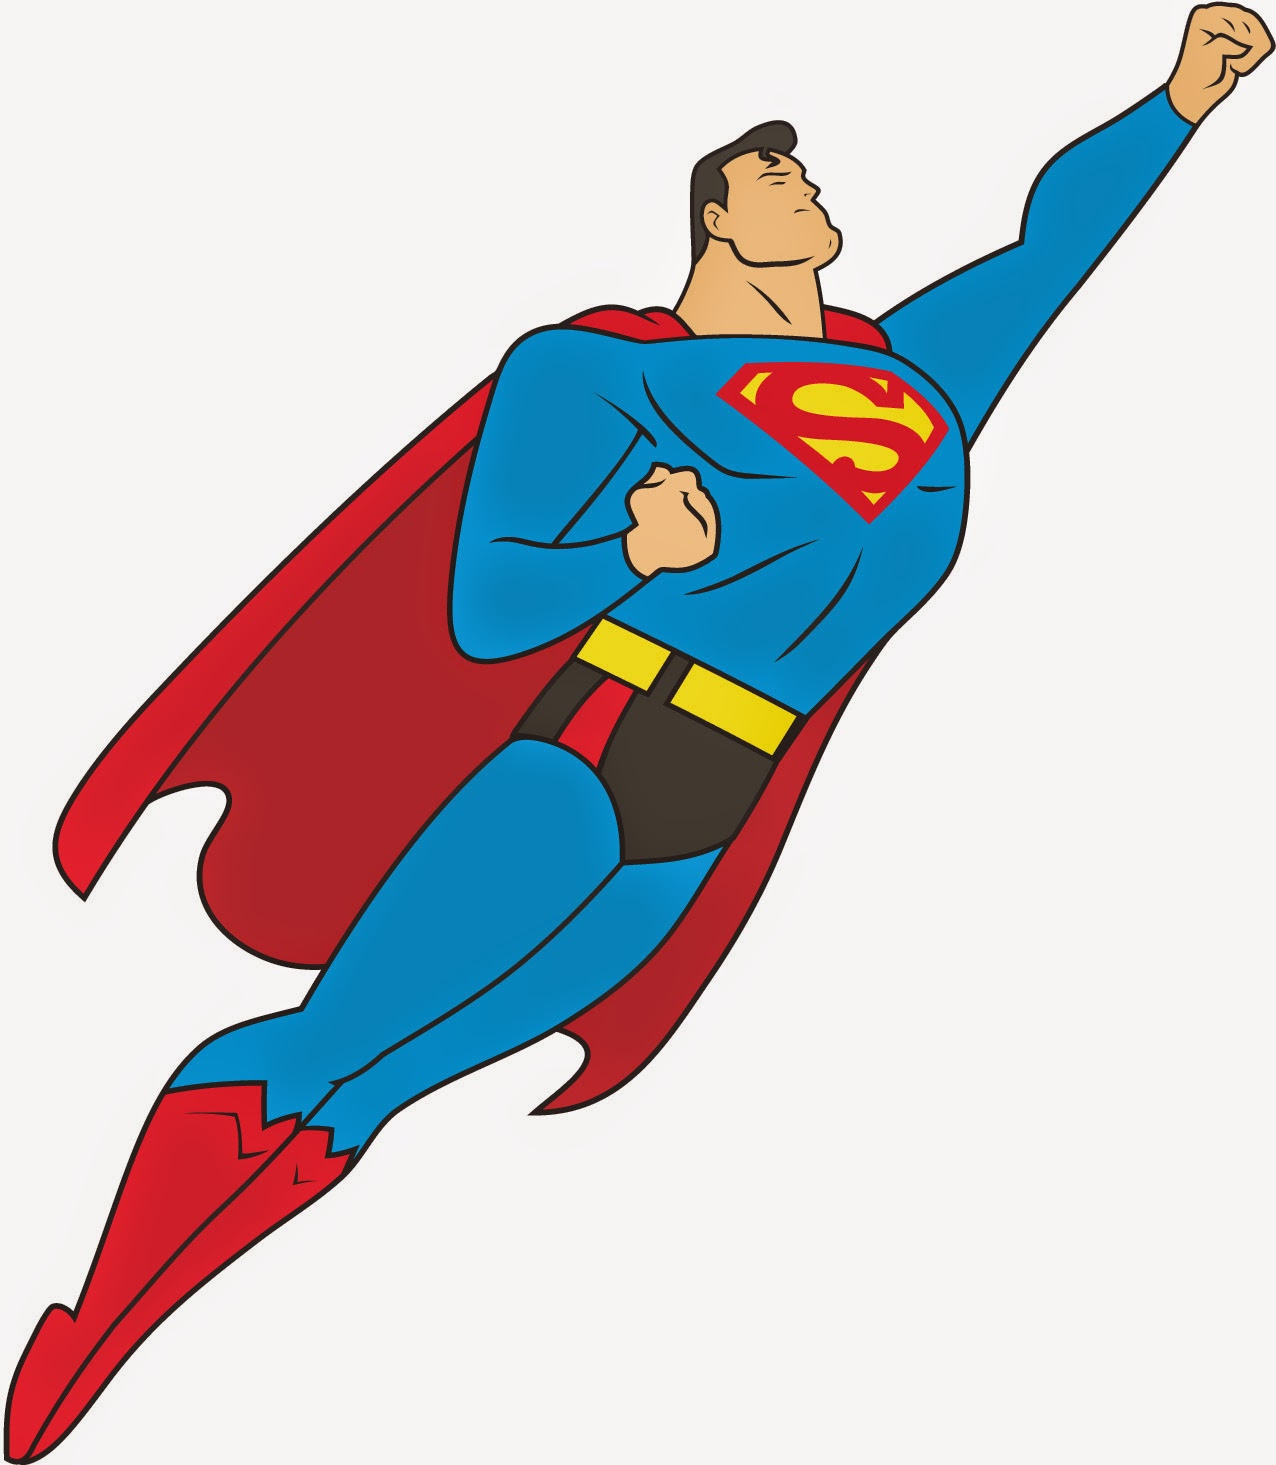 Superhero Cape Clipart - Cliparts.co